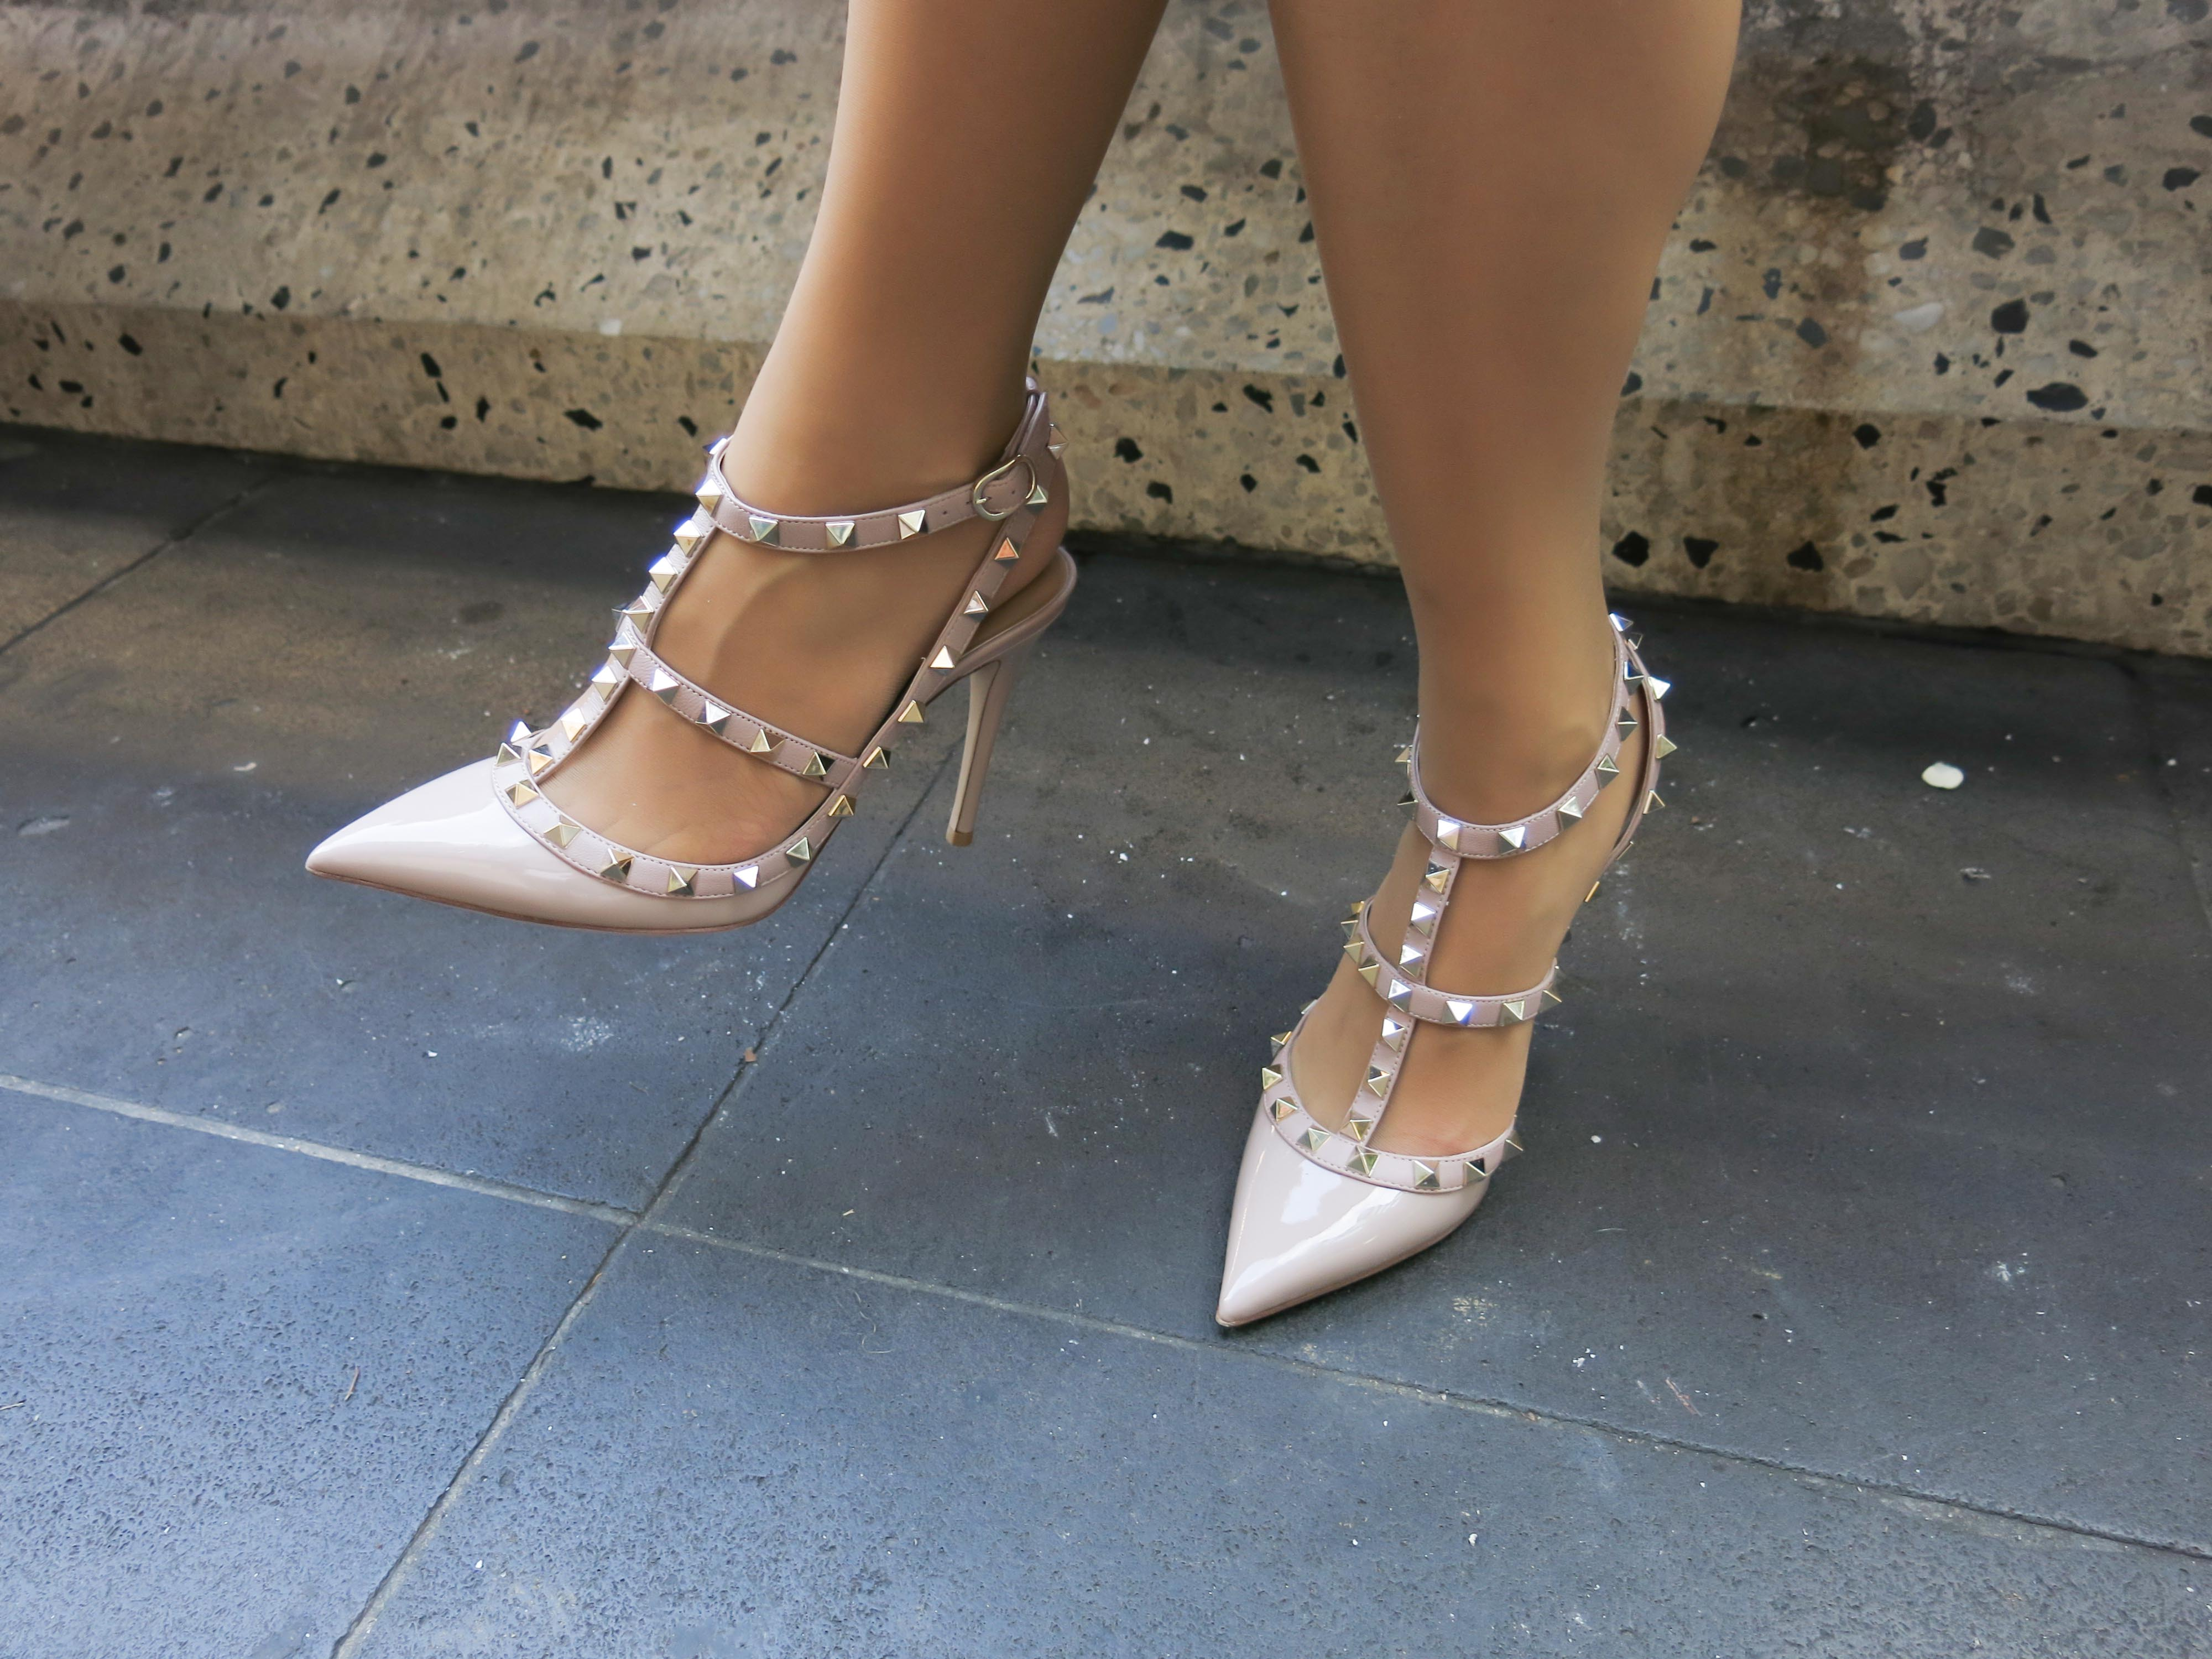 Valentino Shoes Size Guide